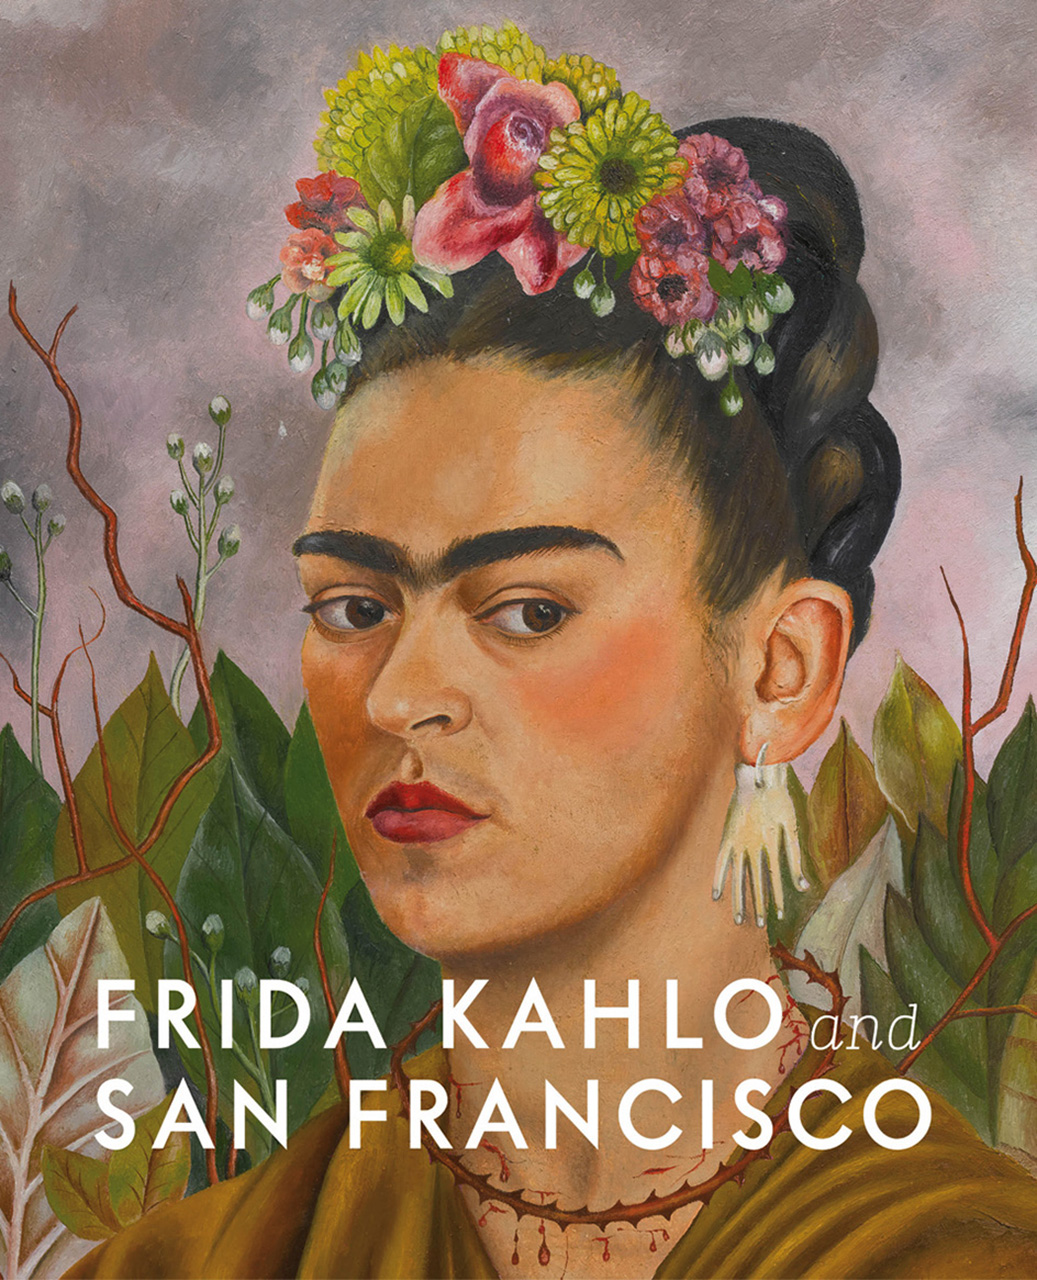 Frida Kahlo and San Francisco